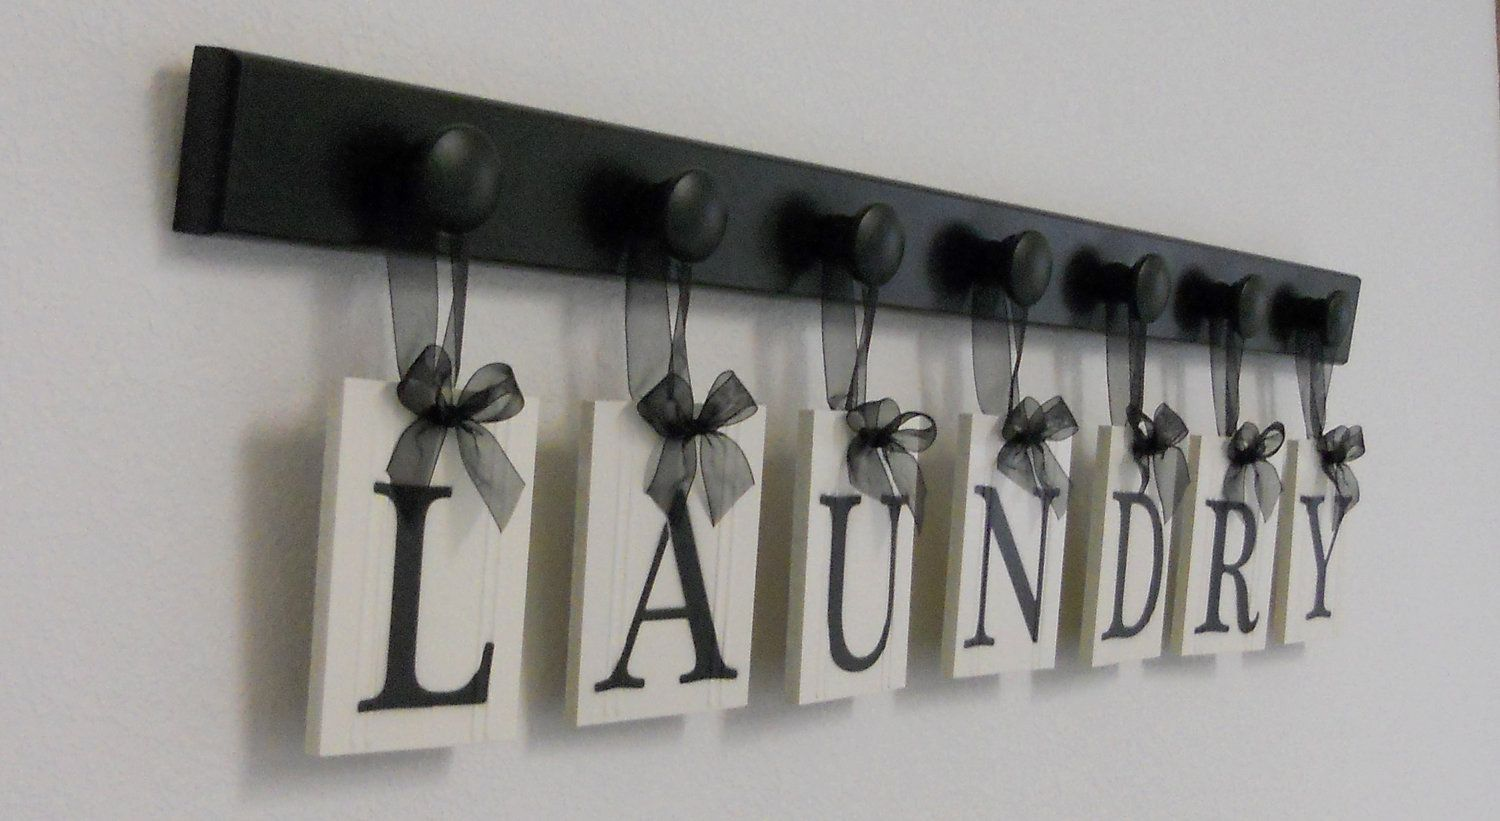 Laundry Room Signs Decor Photo Shelves Wall Decor  Laundry Room Wall Decor Personalized